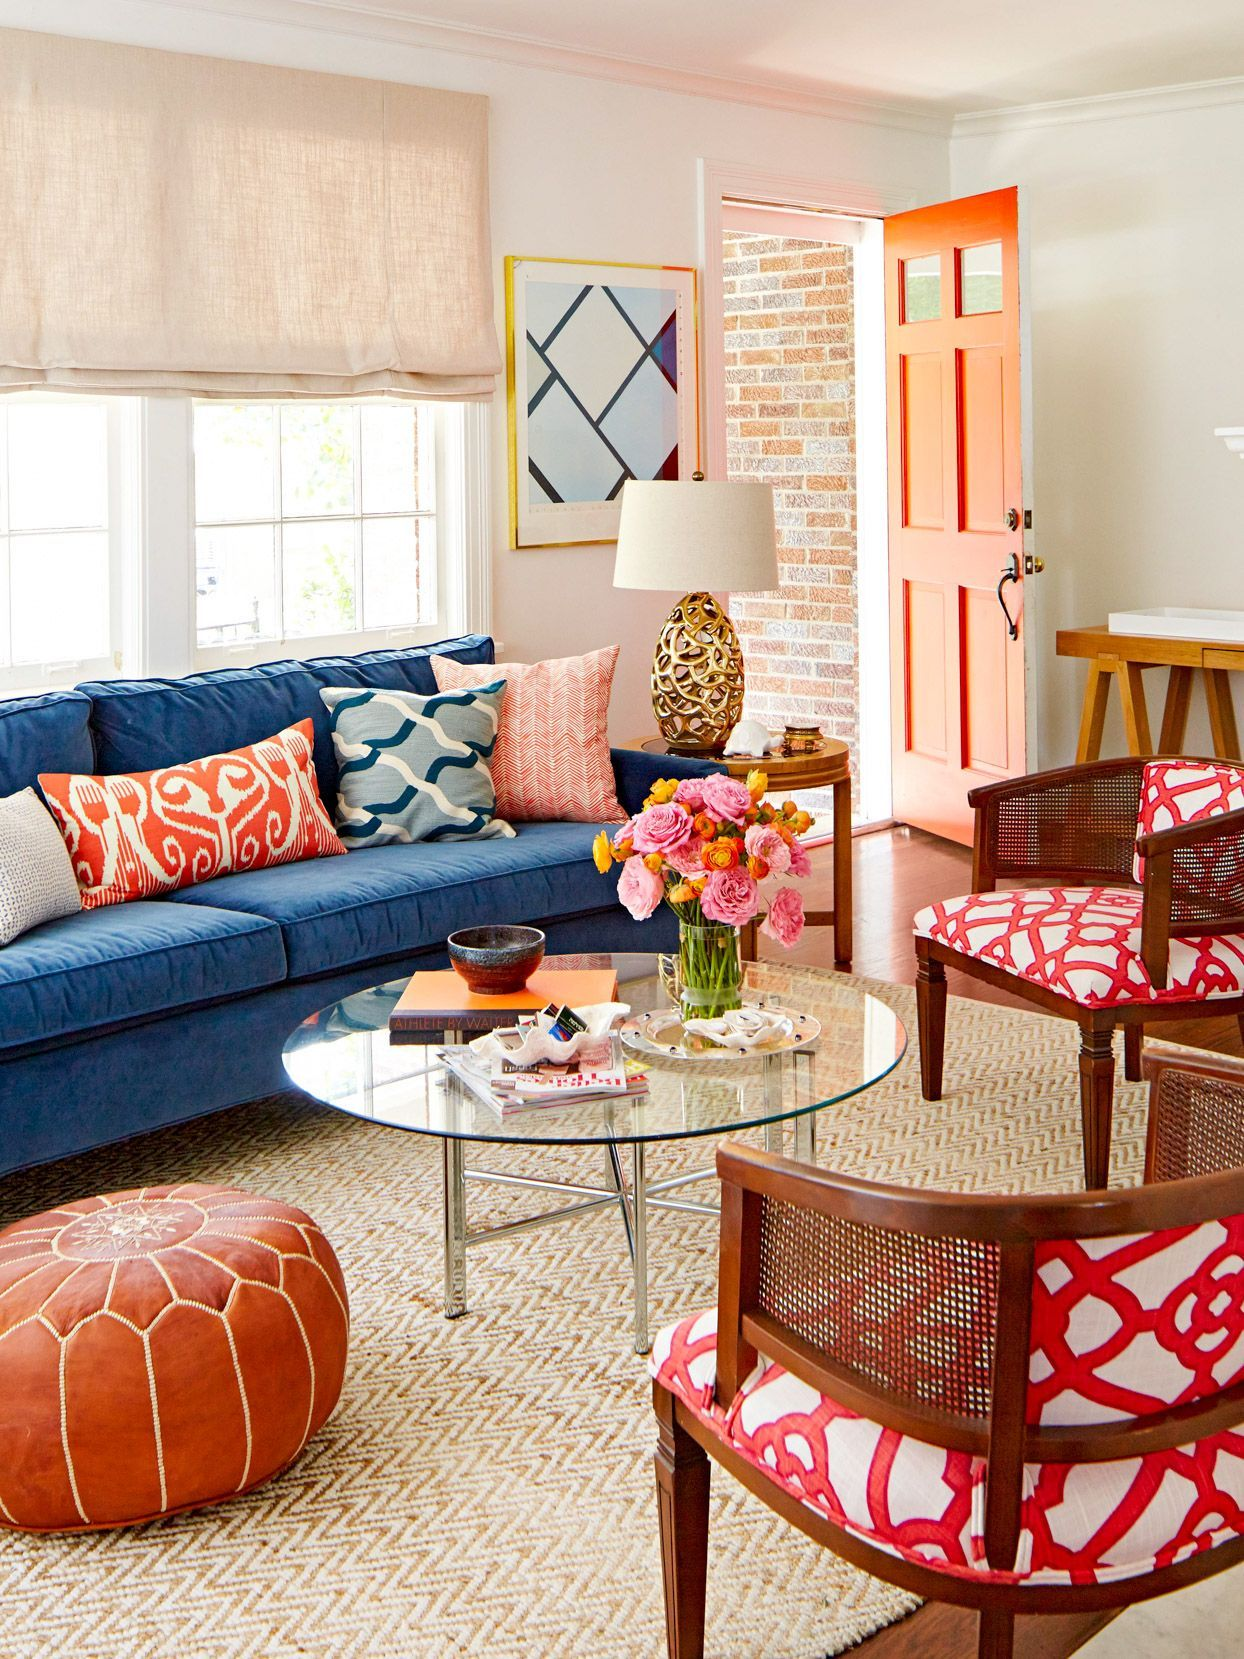 23 Gorgeous Complementary Color Schemes In 2021 Blue Sofas Living Room Living Room Color Schemes Blue Sofa Living